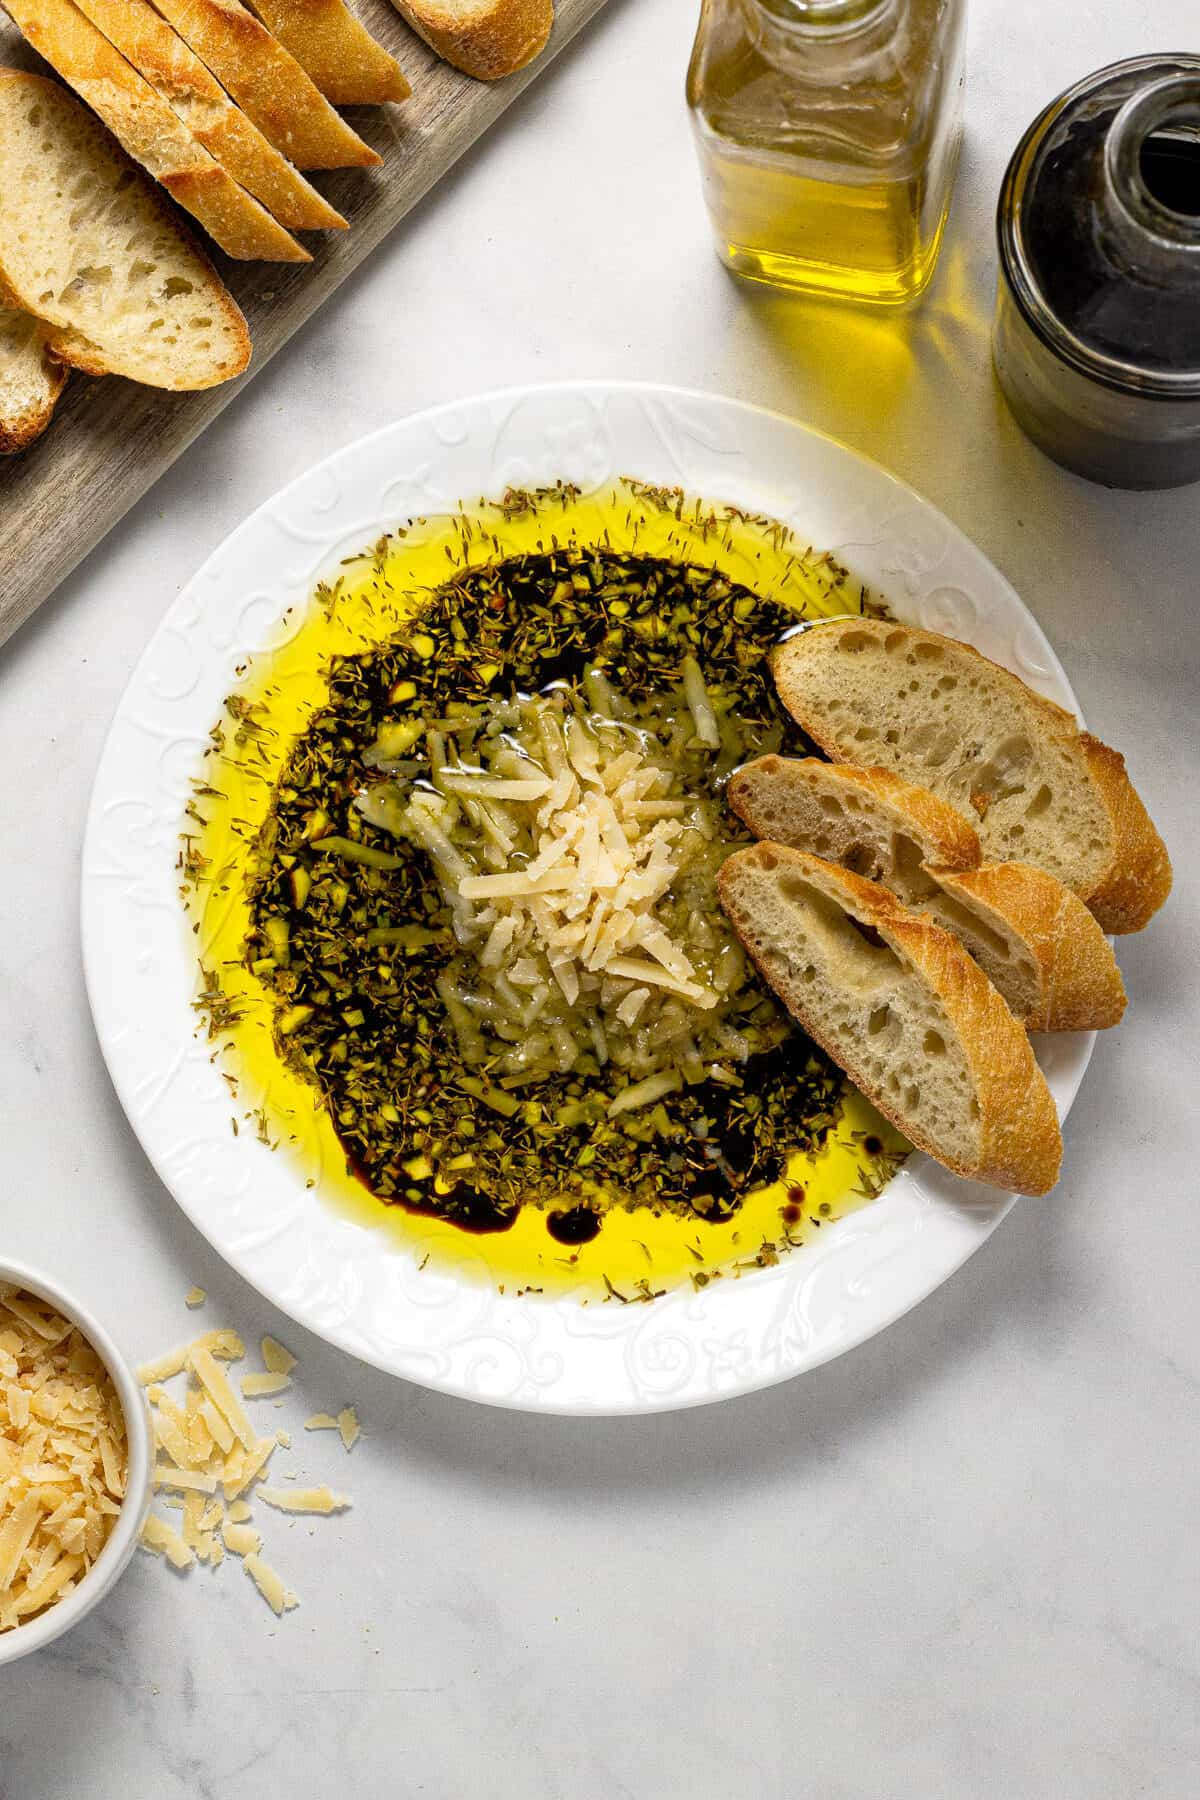 Overhead shot of a plate filled with olive oil and balsamic vinegar dip with Parmesan cheese and herbs